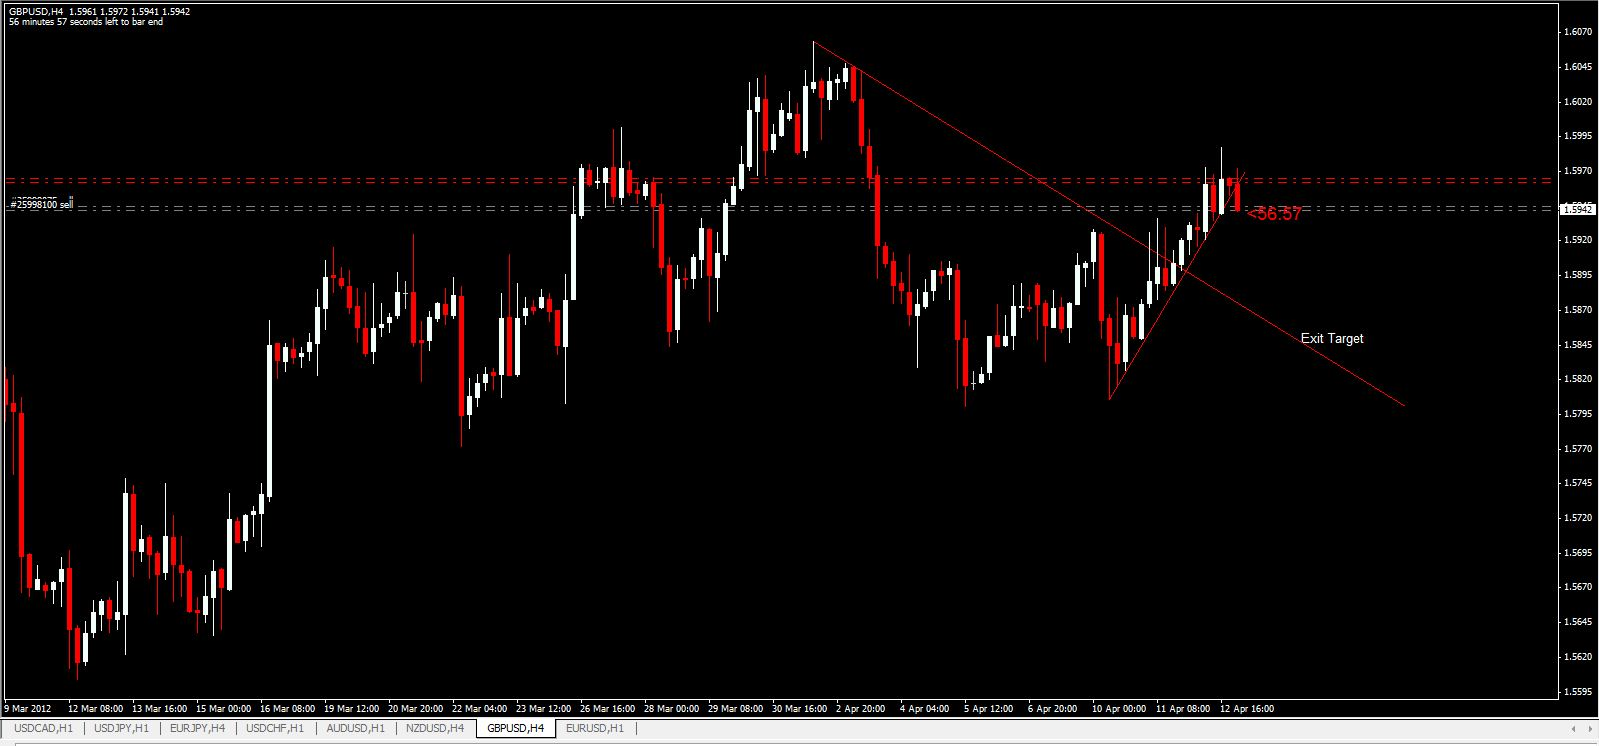 Online forex trading brokers india